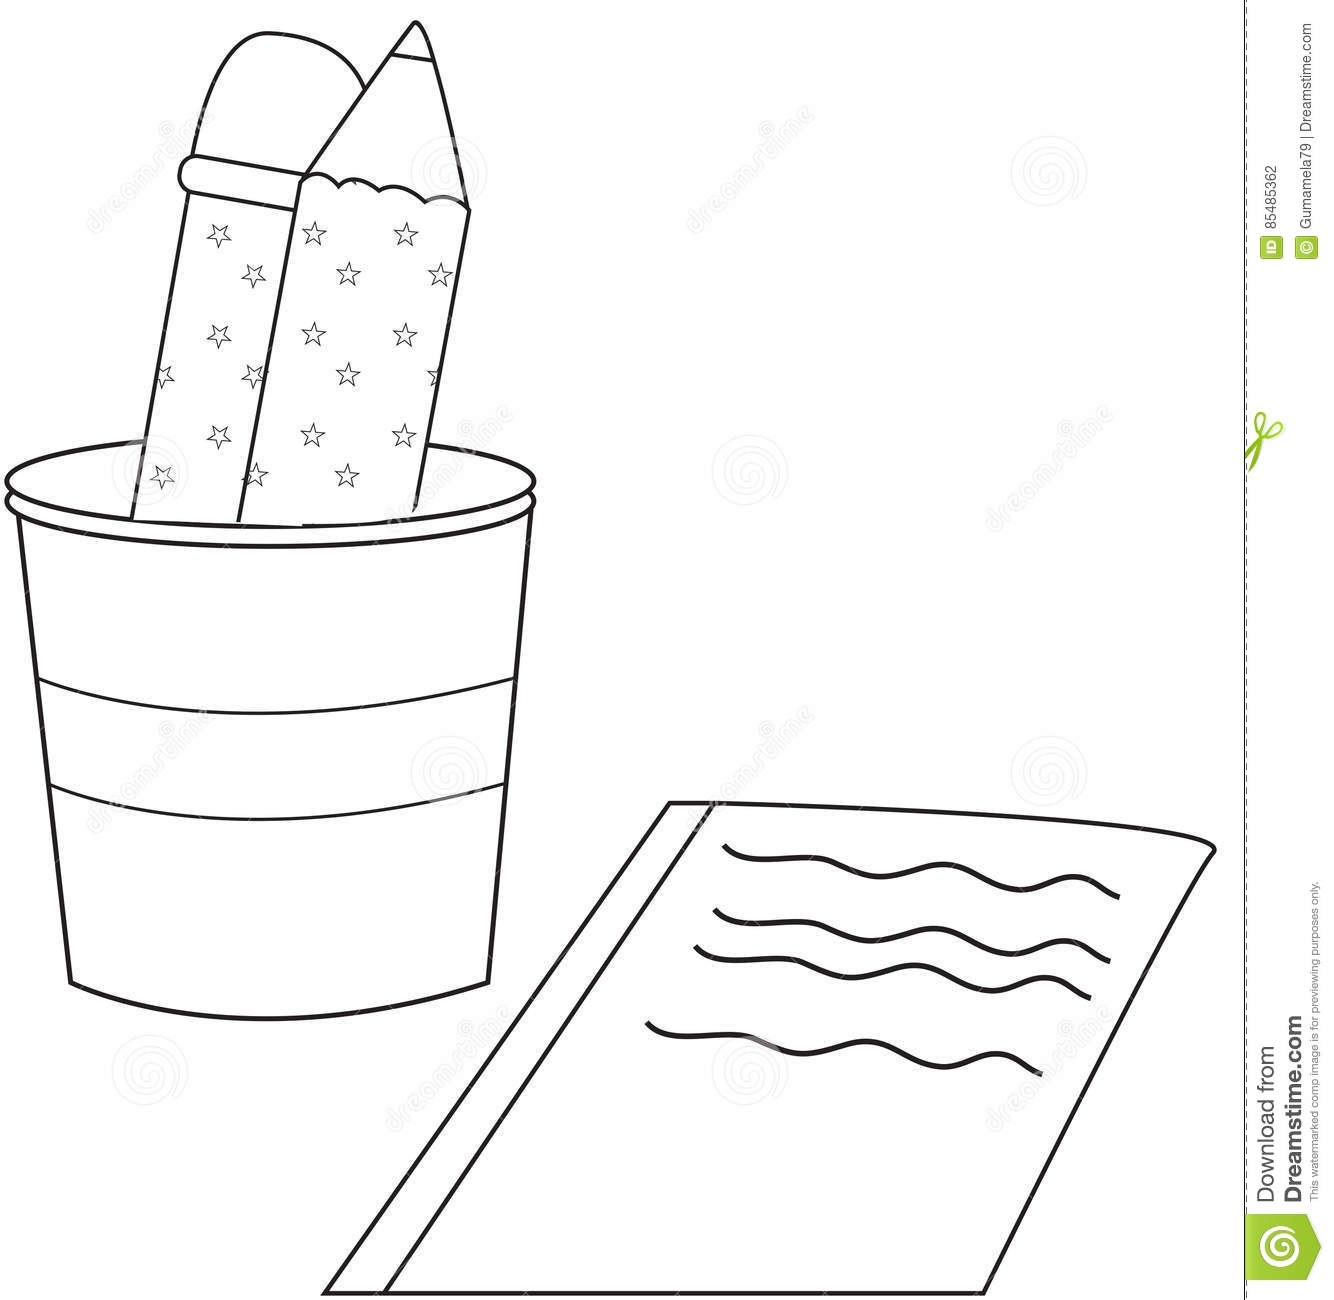 pencil and paper black and white illustration stock illustration